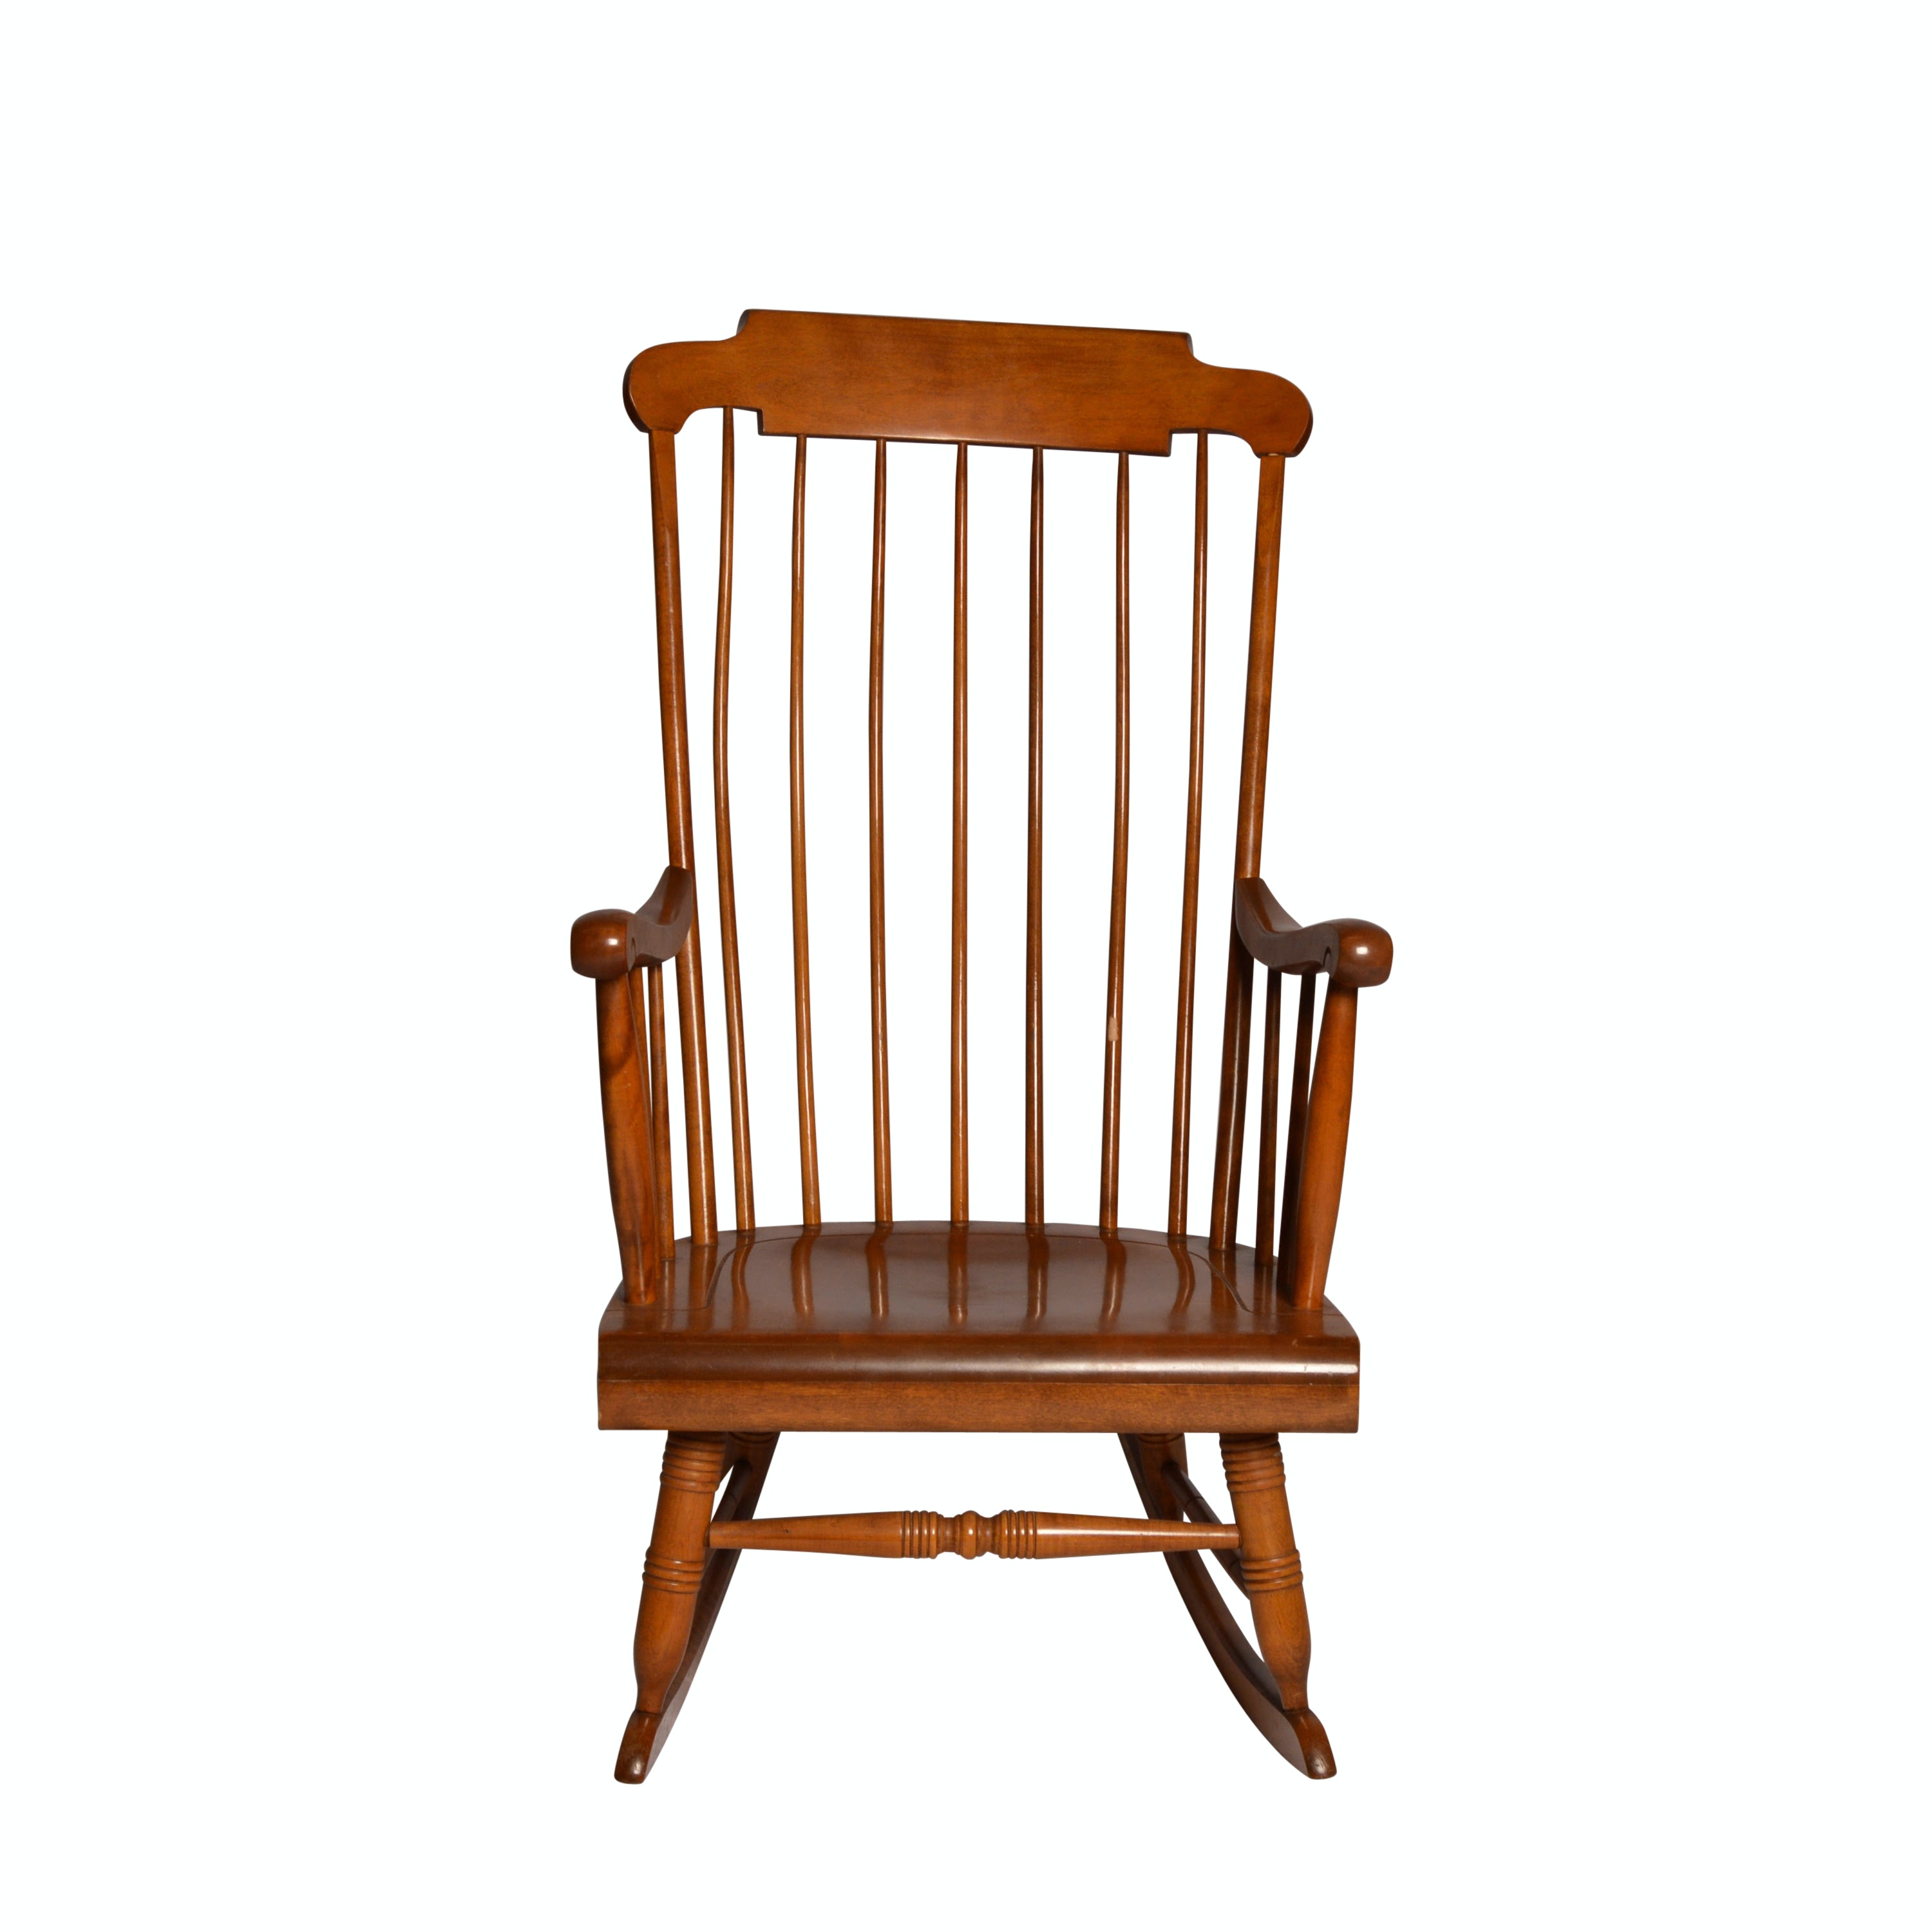 Nichols and Stone Maple Rocking Chair